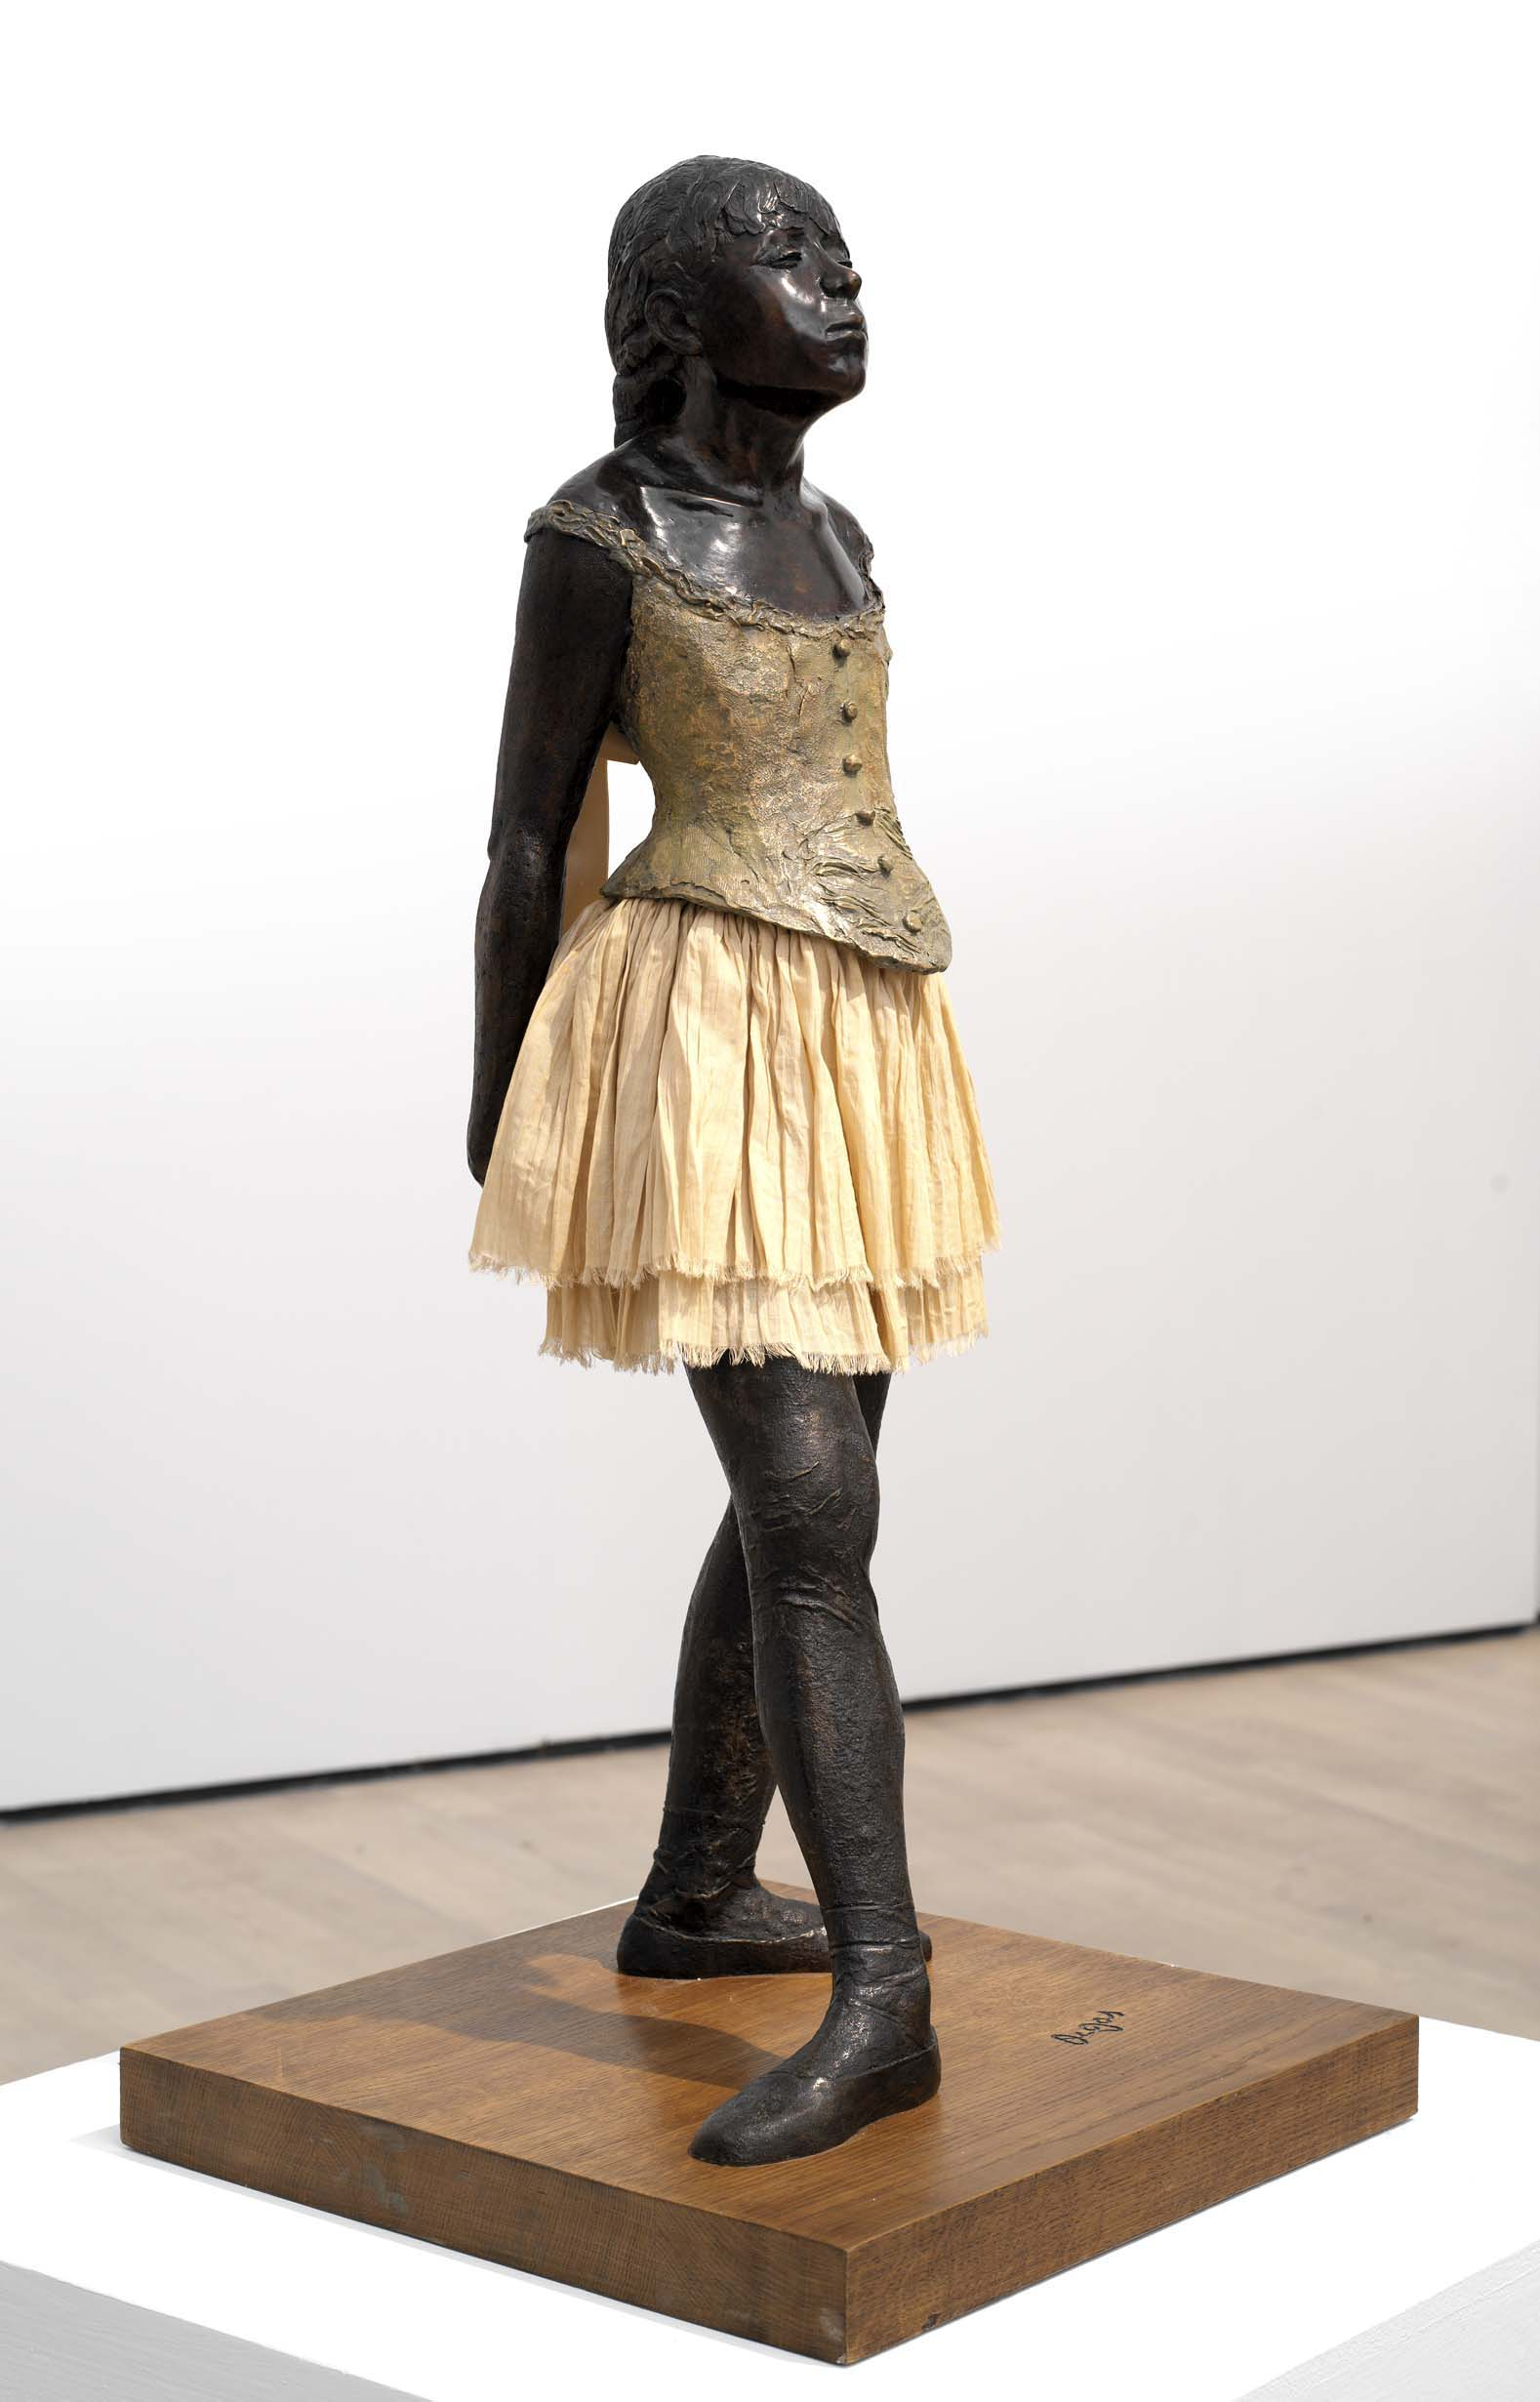 http://plaingeets.files.wordpress.com/2011/08/degas1.jpg